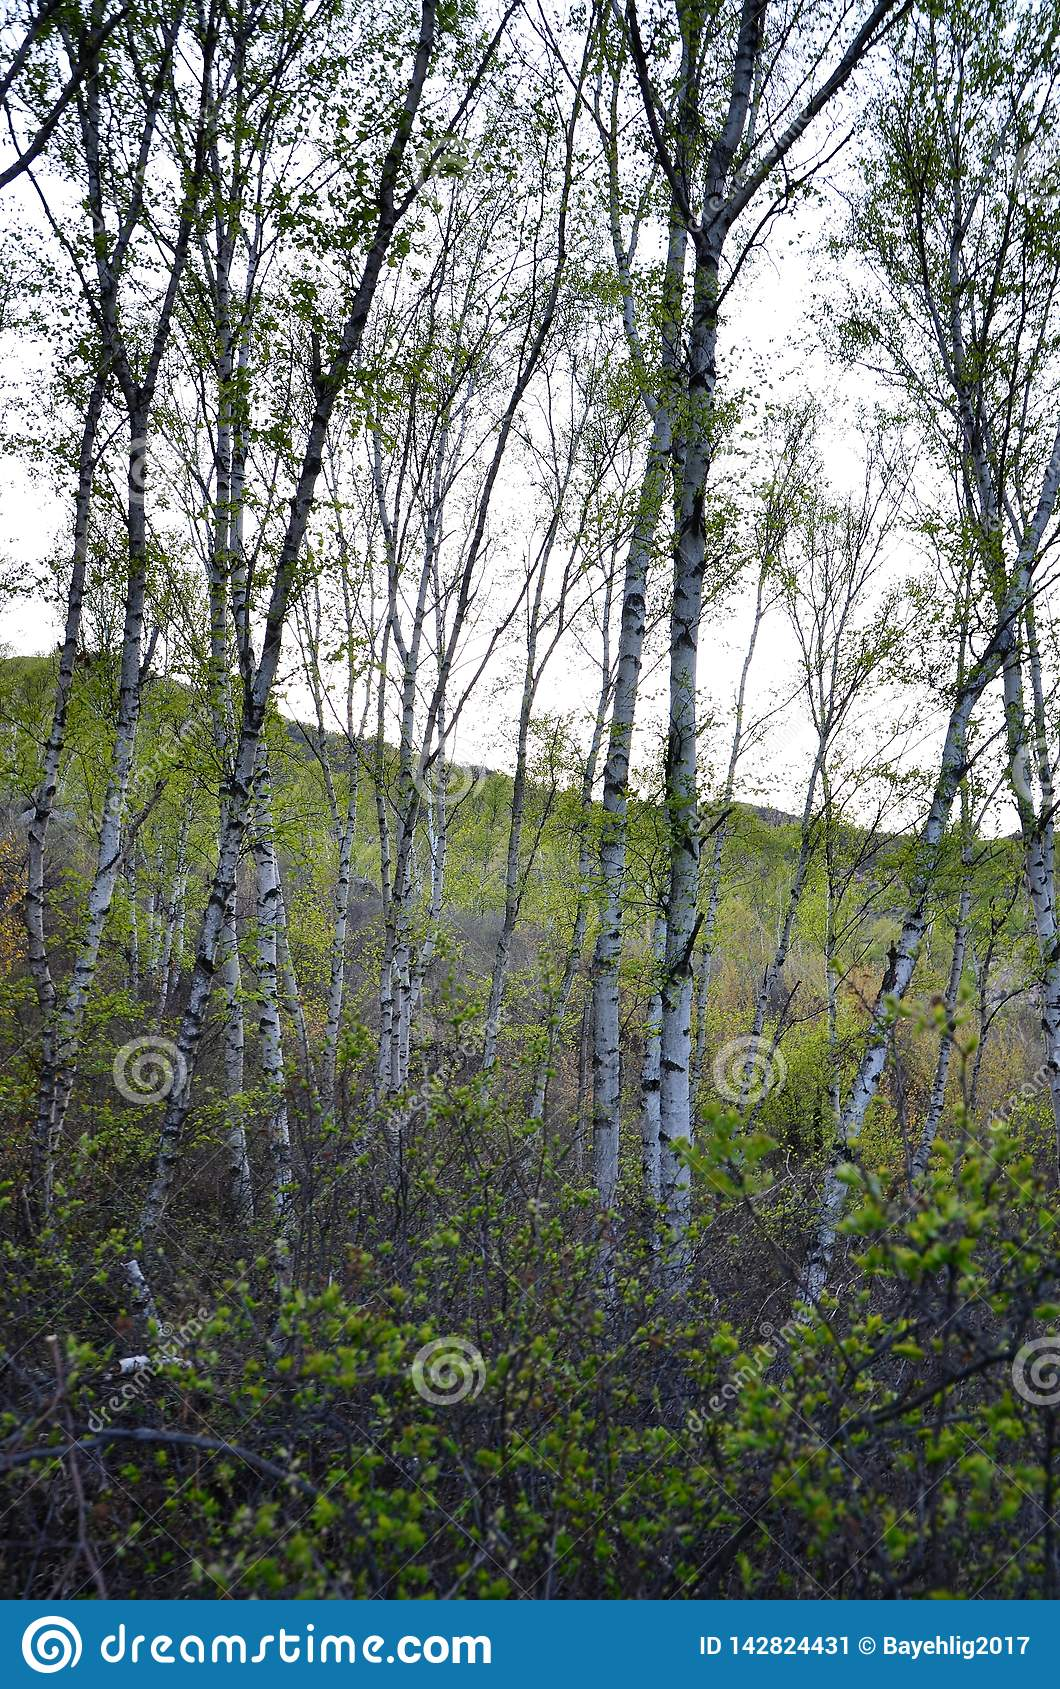 Green birch trees in the forest